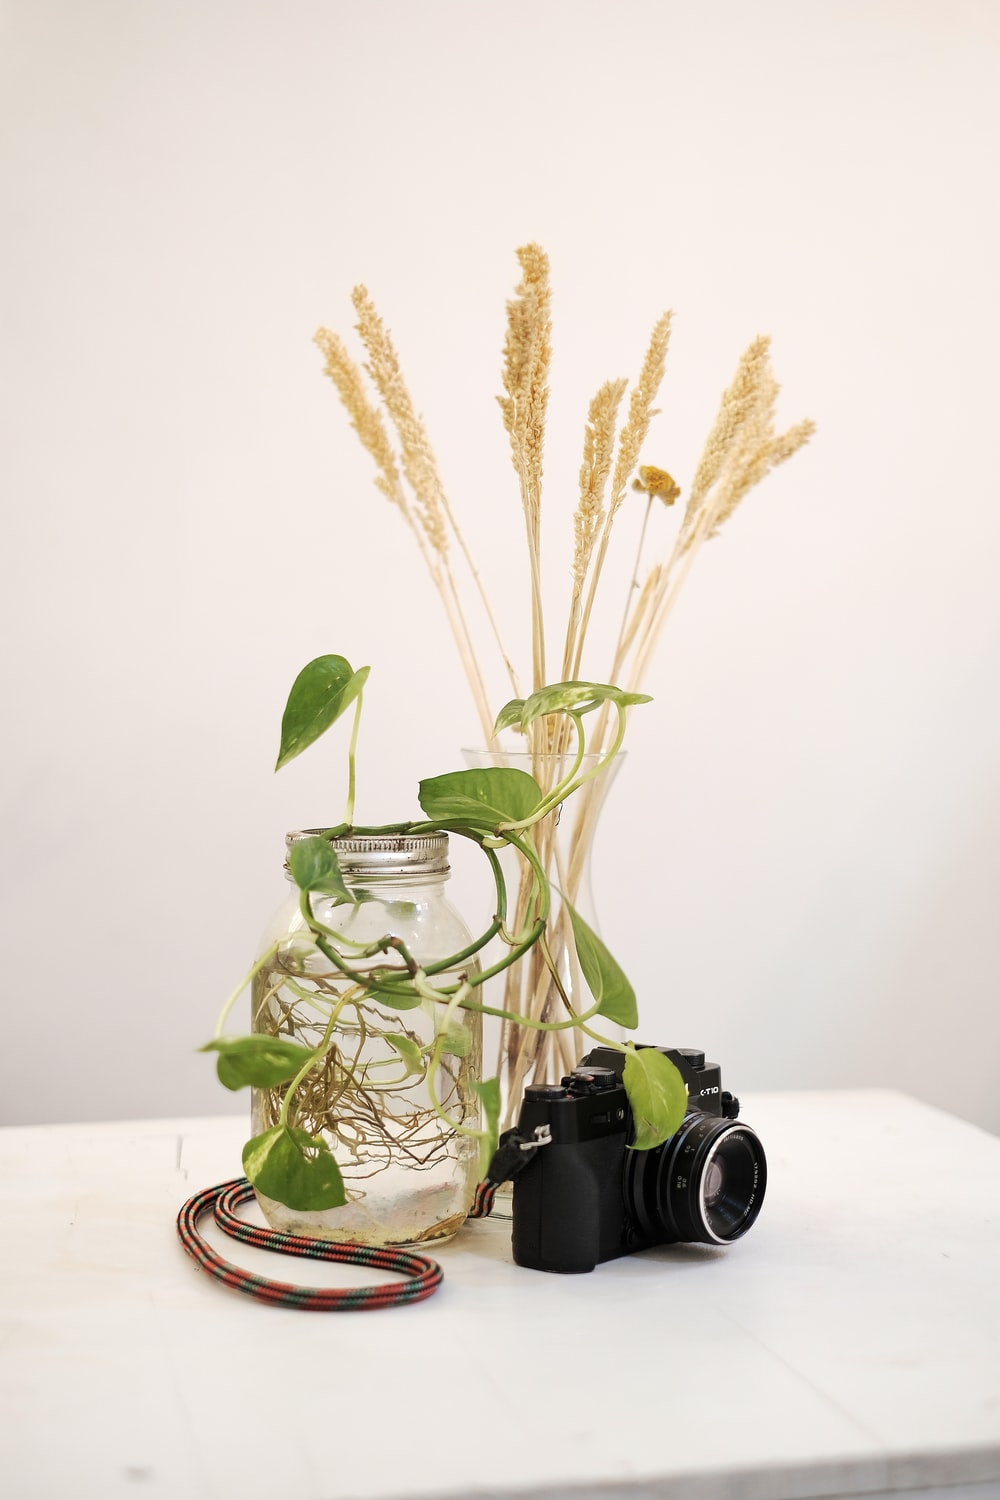 DSLR camera and plant on table